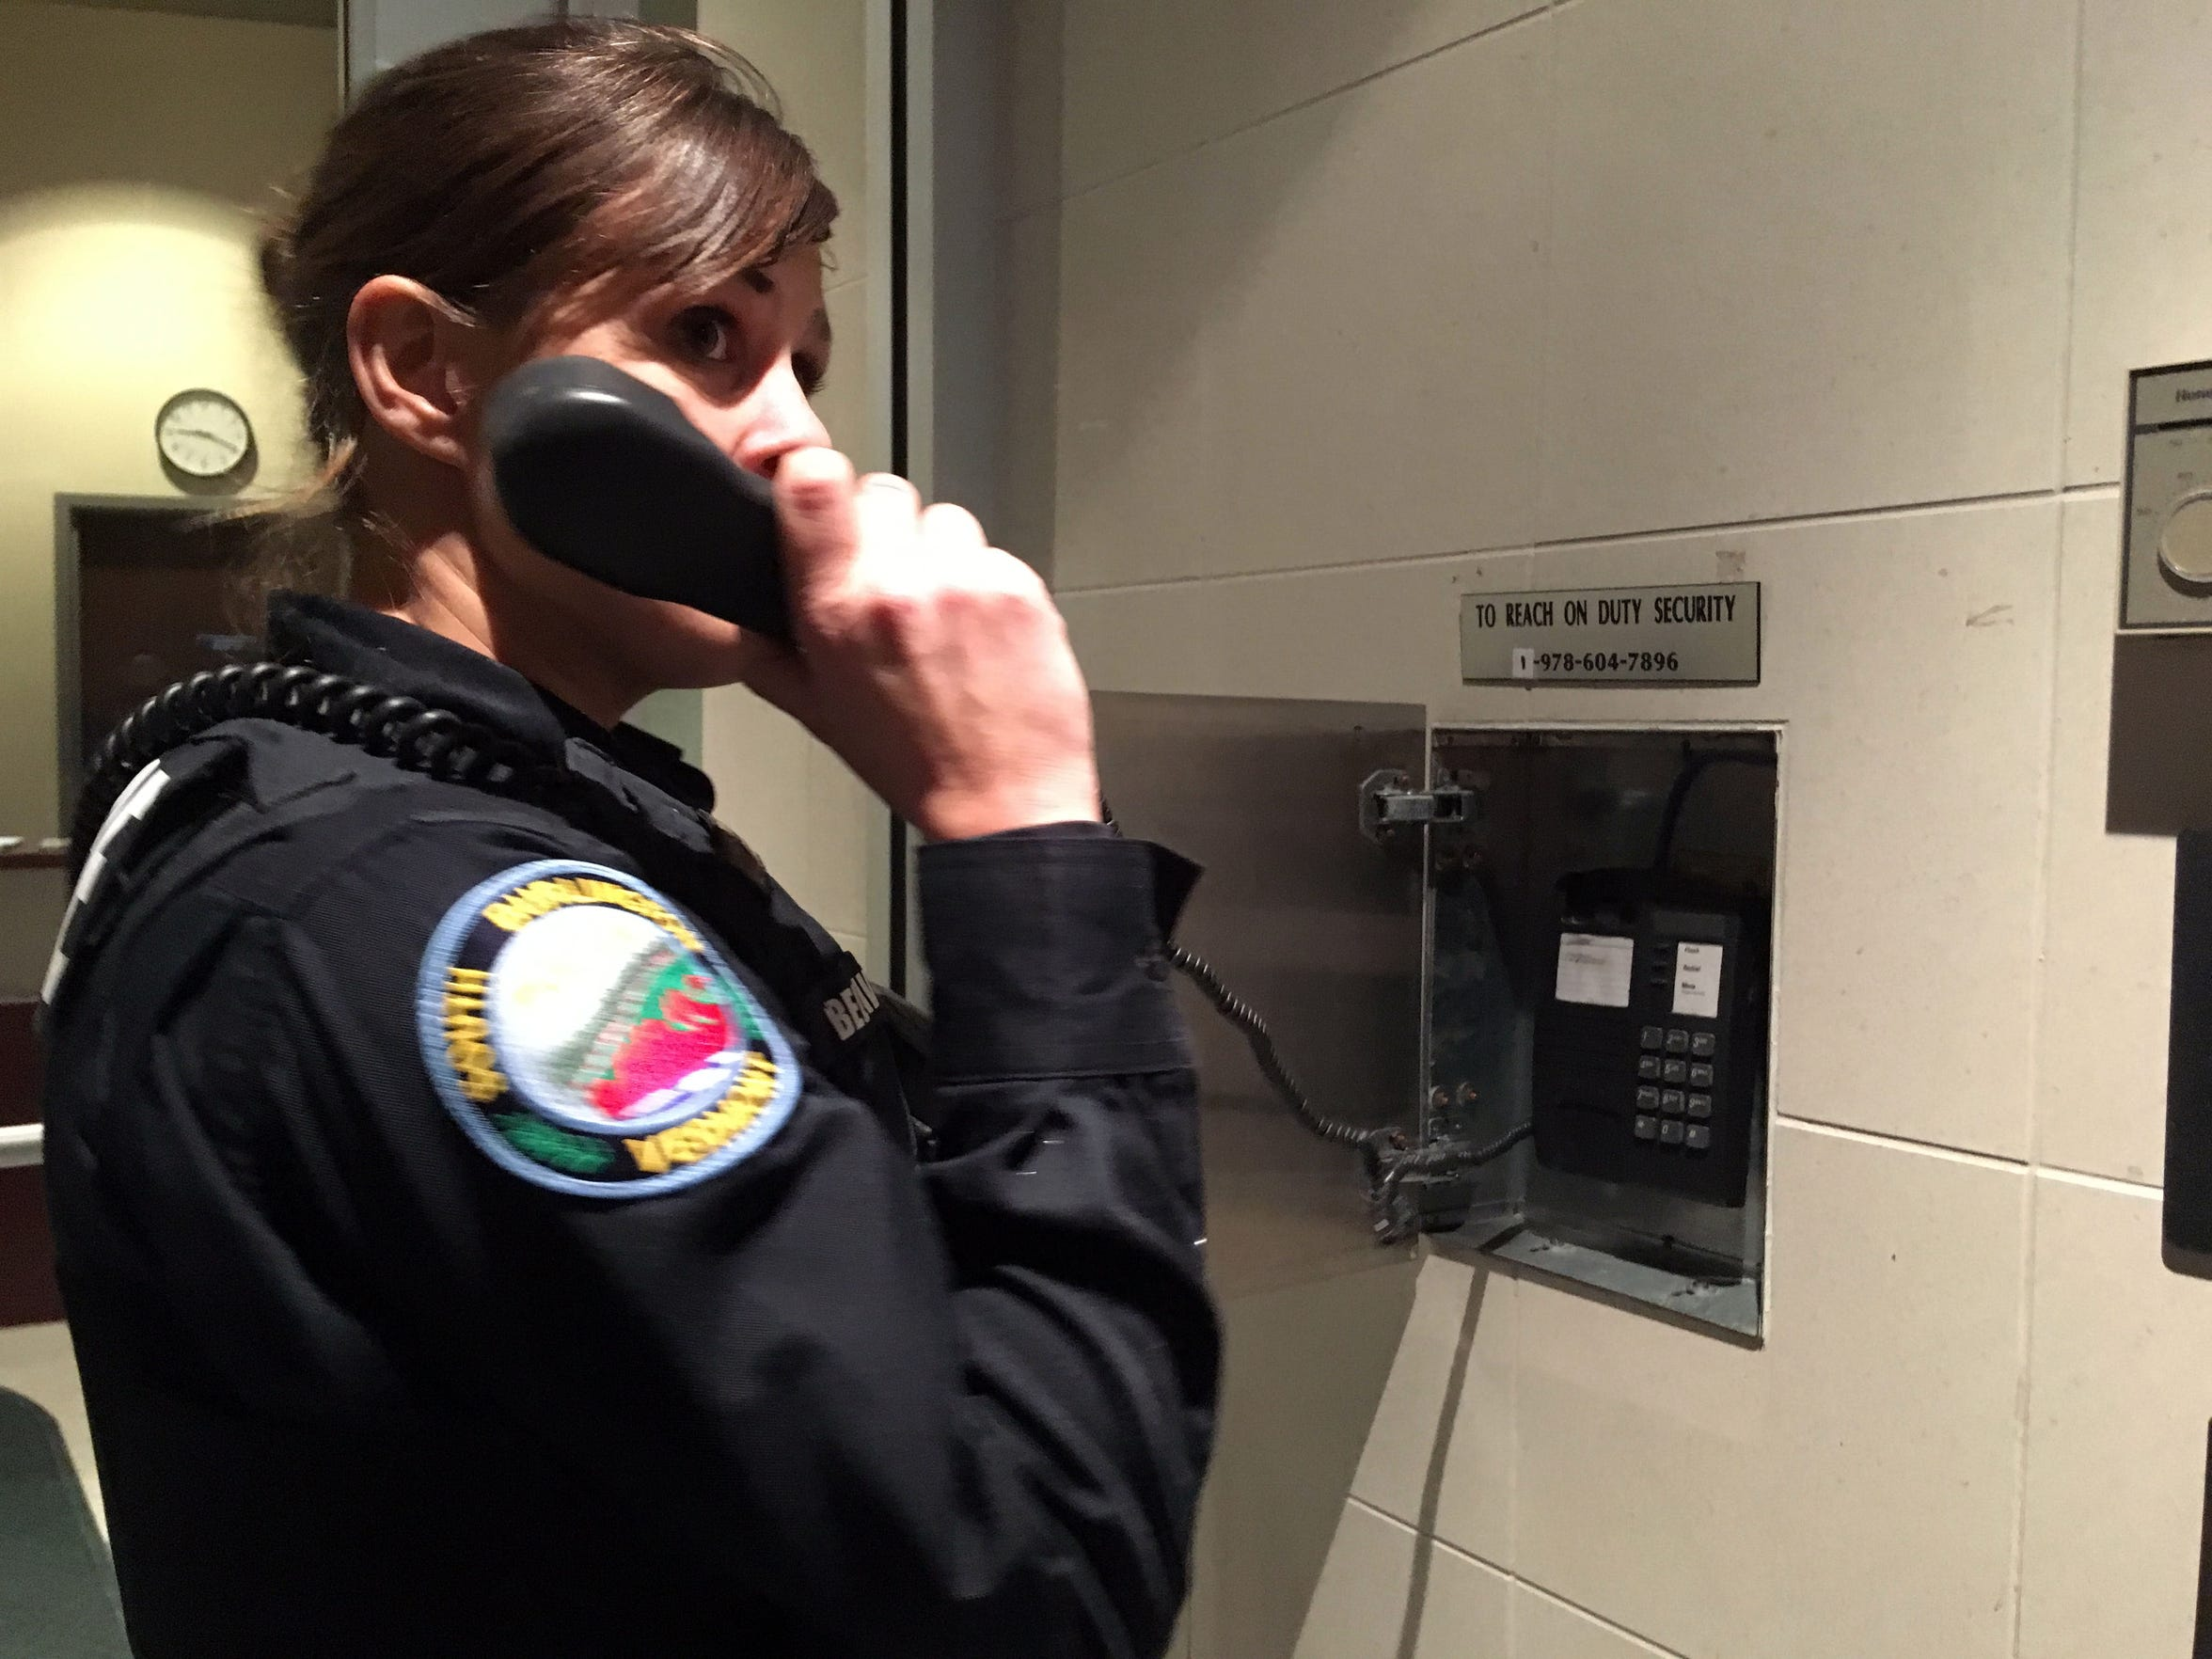 South Burlington Police Officer Sarah Bellavance attempts to reach a security officer through a phone outside an IDX Drive building on Dec. 6, 2018.